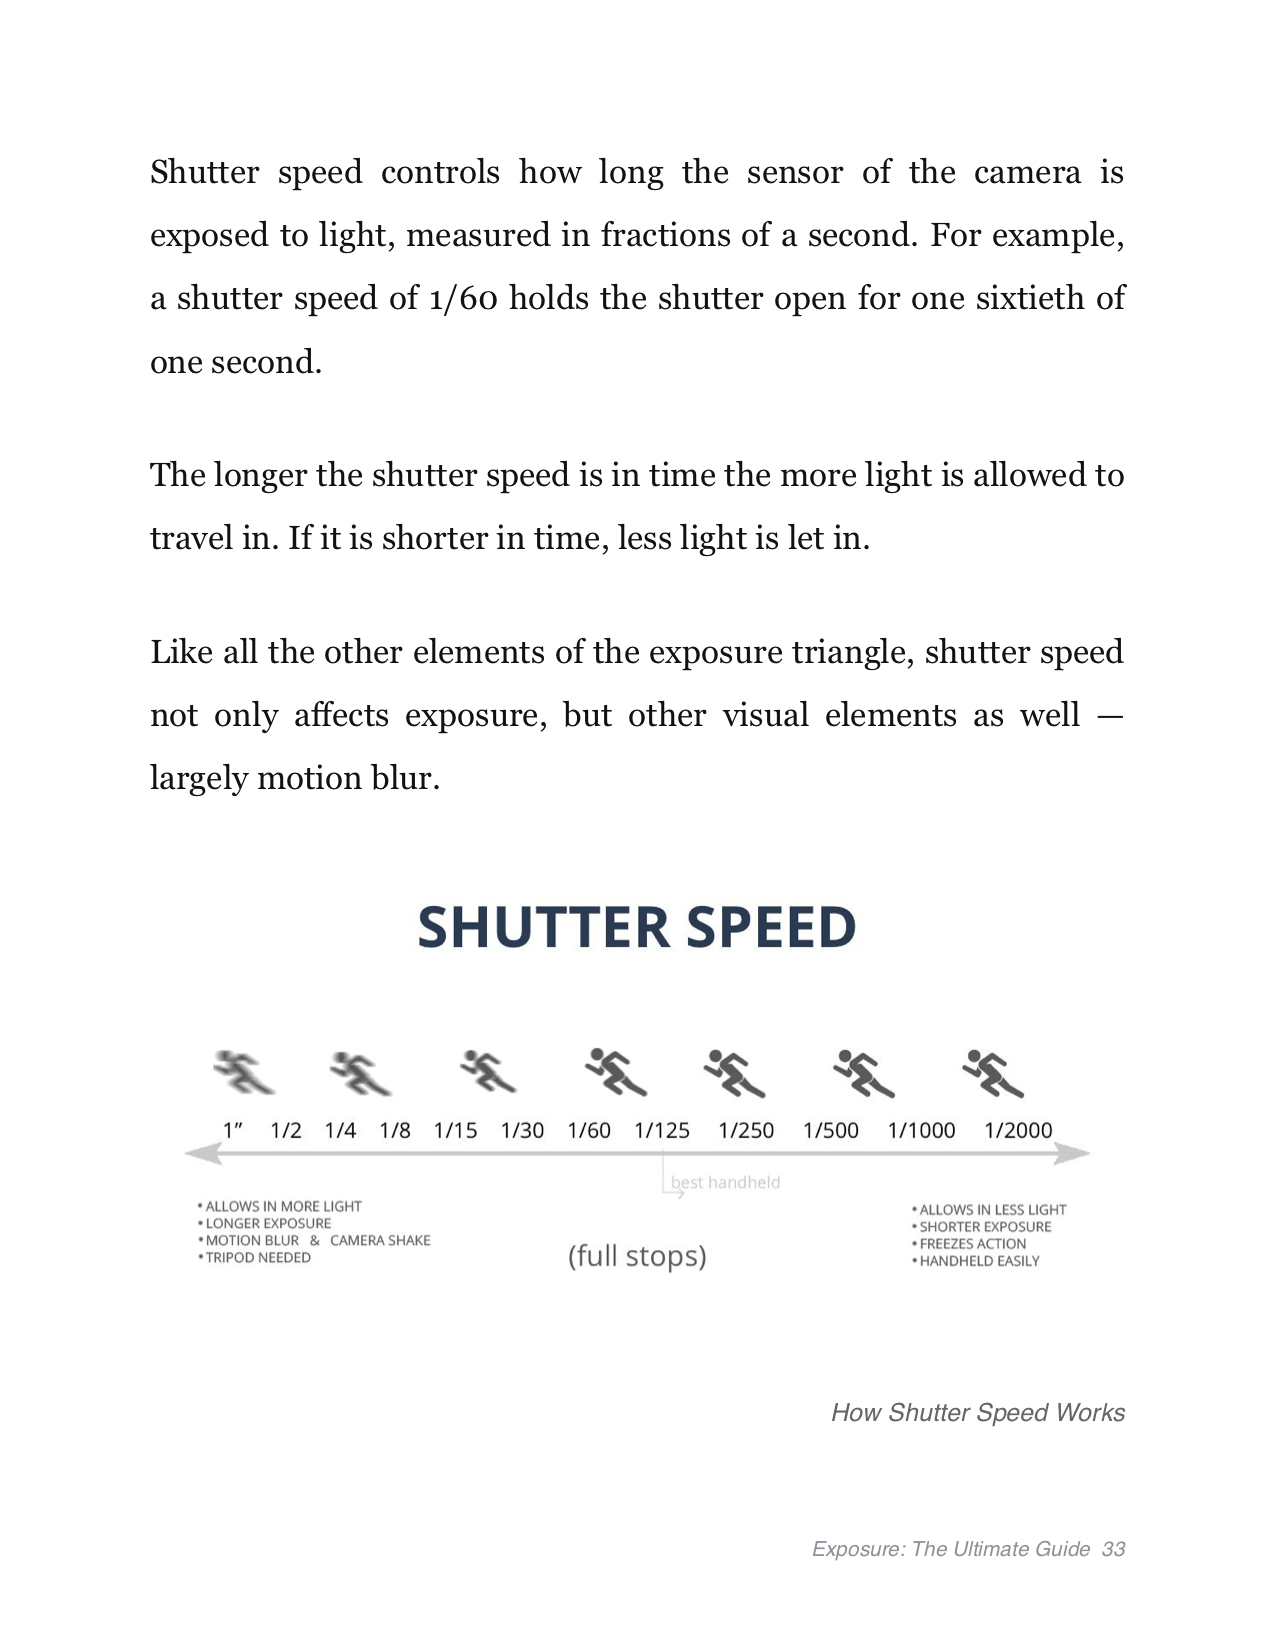 Exposure Triangle Ebook - The Ultimate Guide - Shutter Speed